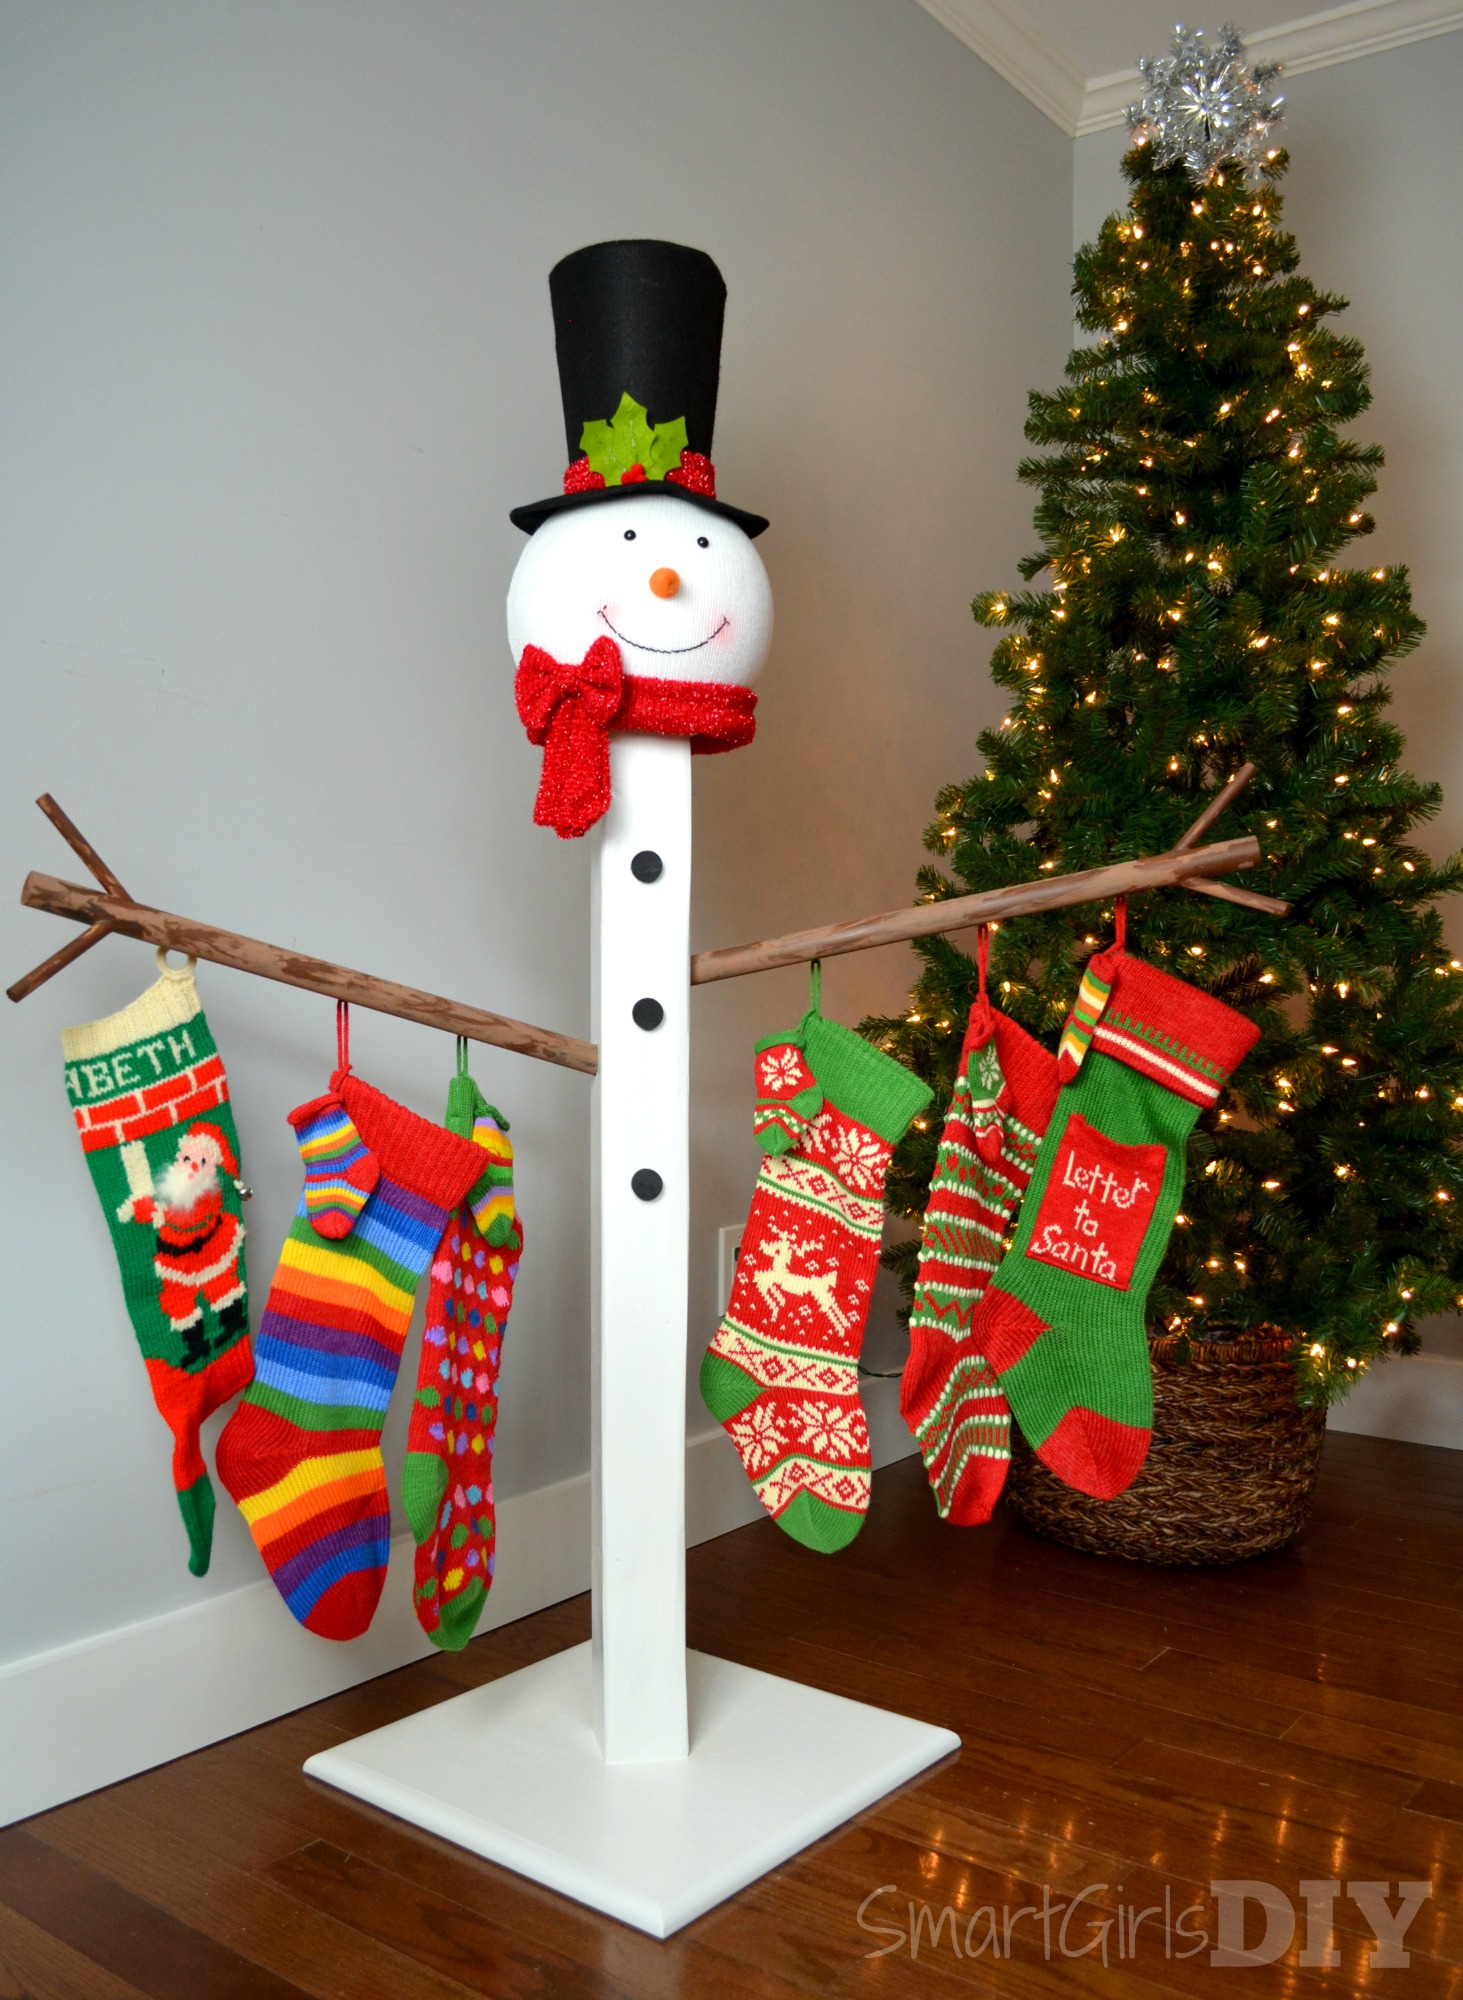 Holiday stocking post from Home Depot DIY workshops